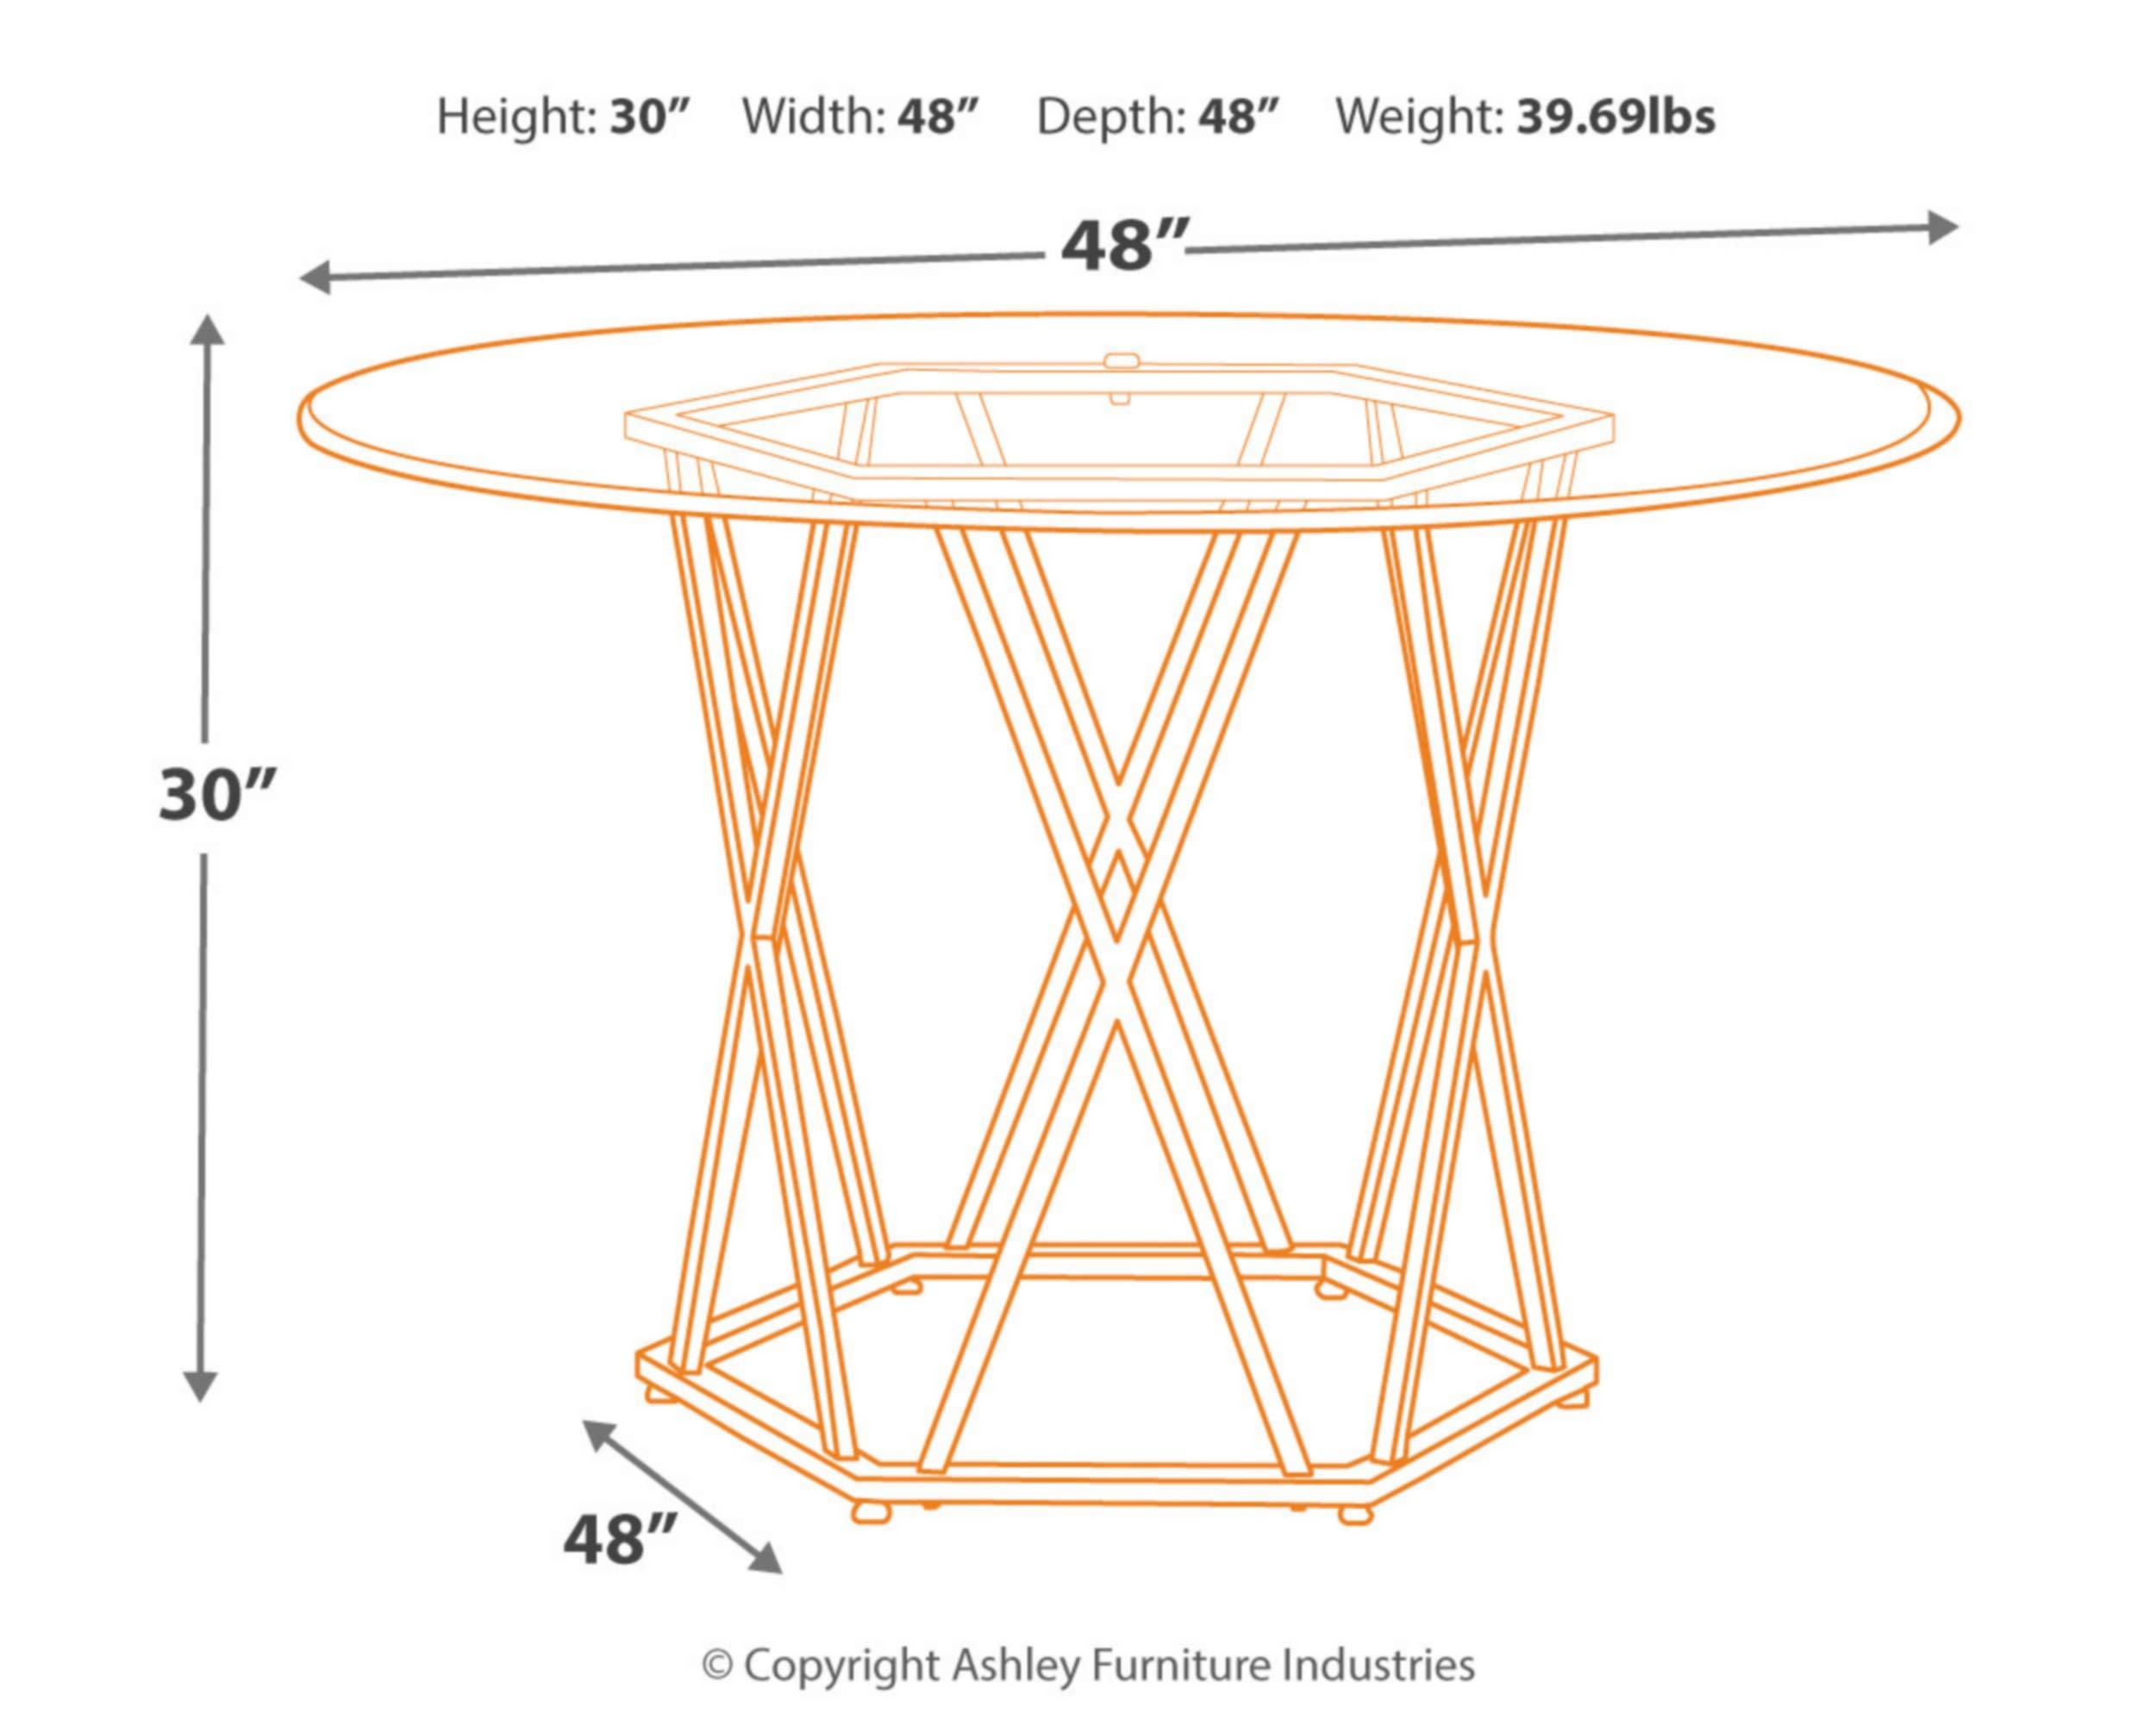 Signature Design by Ashley D275-15 Madanere Dining Table, Chrome by Signature Design by Ashley (Image #3)